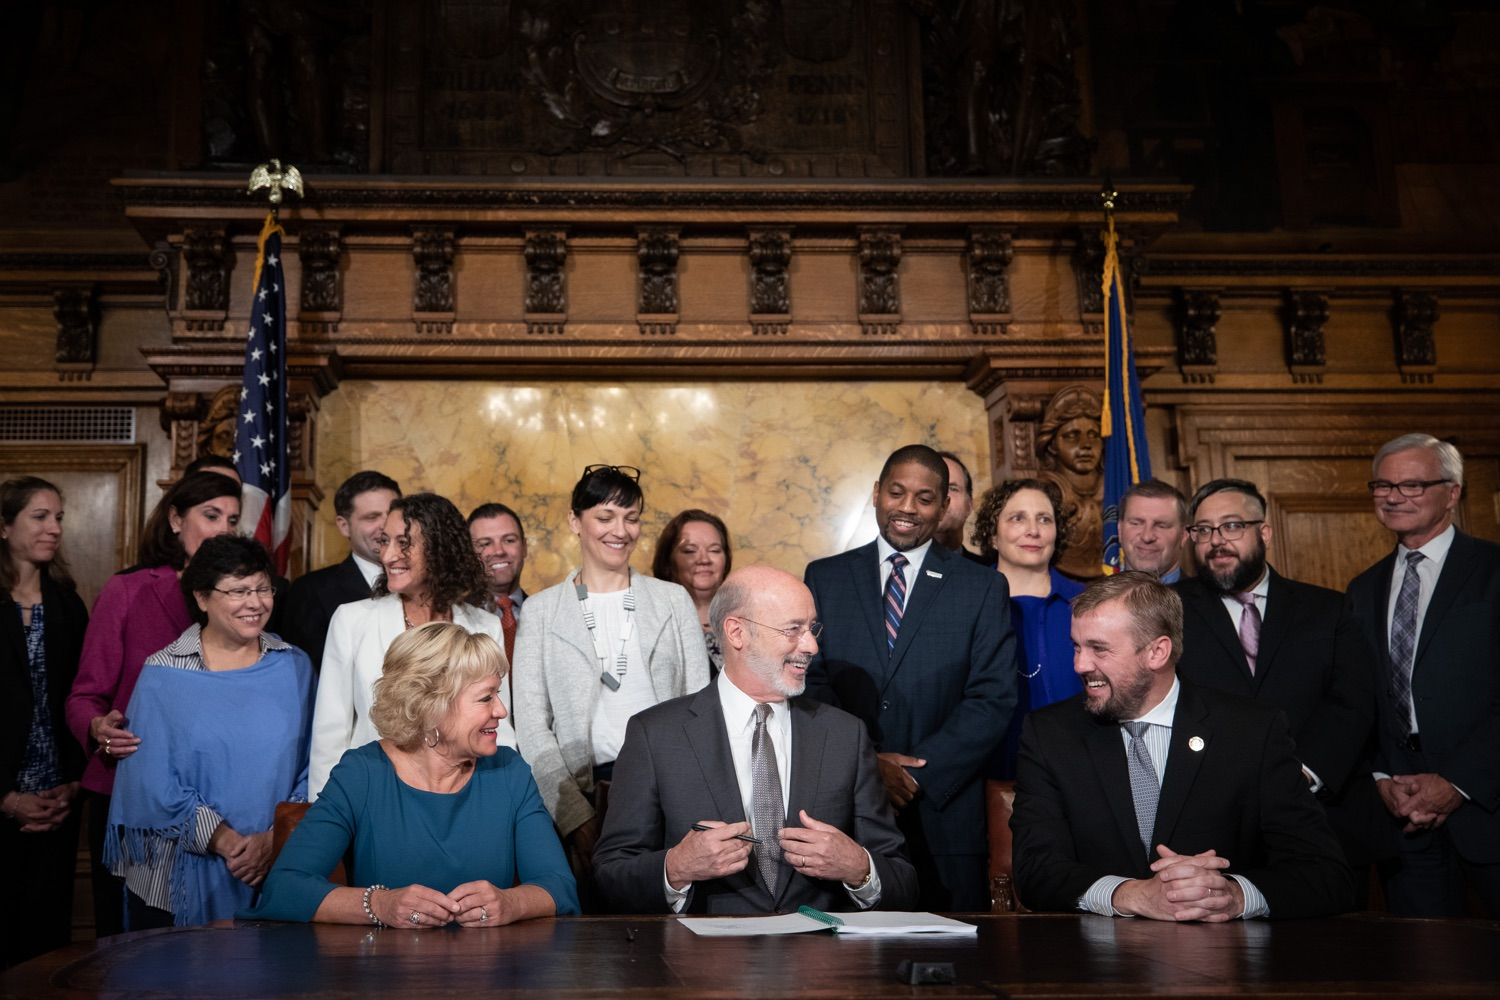 "<a href=""http://filesource.abacast.com/commonwealthofpa/photo/17554_gov_voter_reform_bill_dz_012.jpg"" target=""_blank"">⇣ Download Photo<br></a>Harrisburg, PA  Governor Tom Wolf signs the Election Reform Bill. Governor Wolf made voting more convenient and secure by signing Act 77 of 2019, the most significant improvement to Pennsylvanias elections in more than 80 years. The bipartisan compromise legislation takes effect for the April 2020 primary election and makes Pennsylvania a national leader with voter-friendly election reforms."